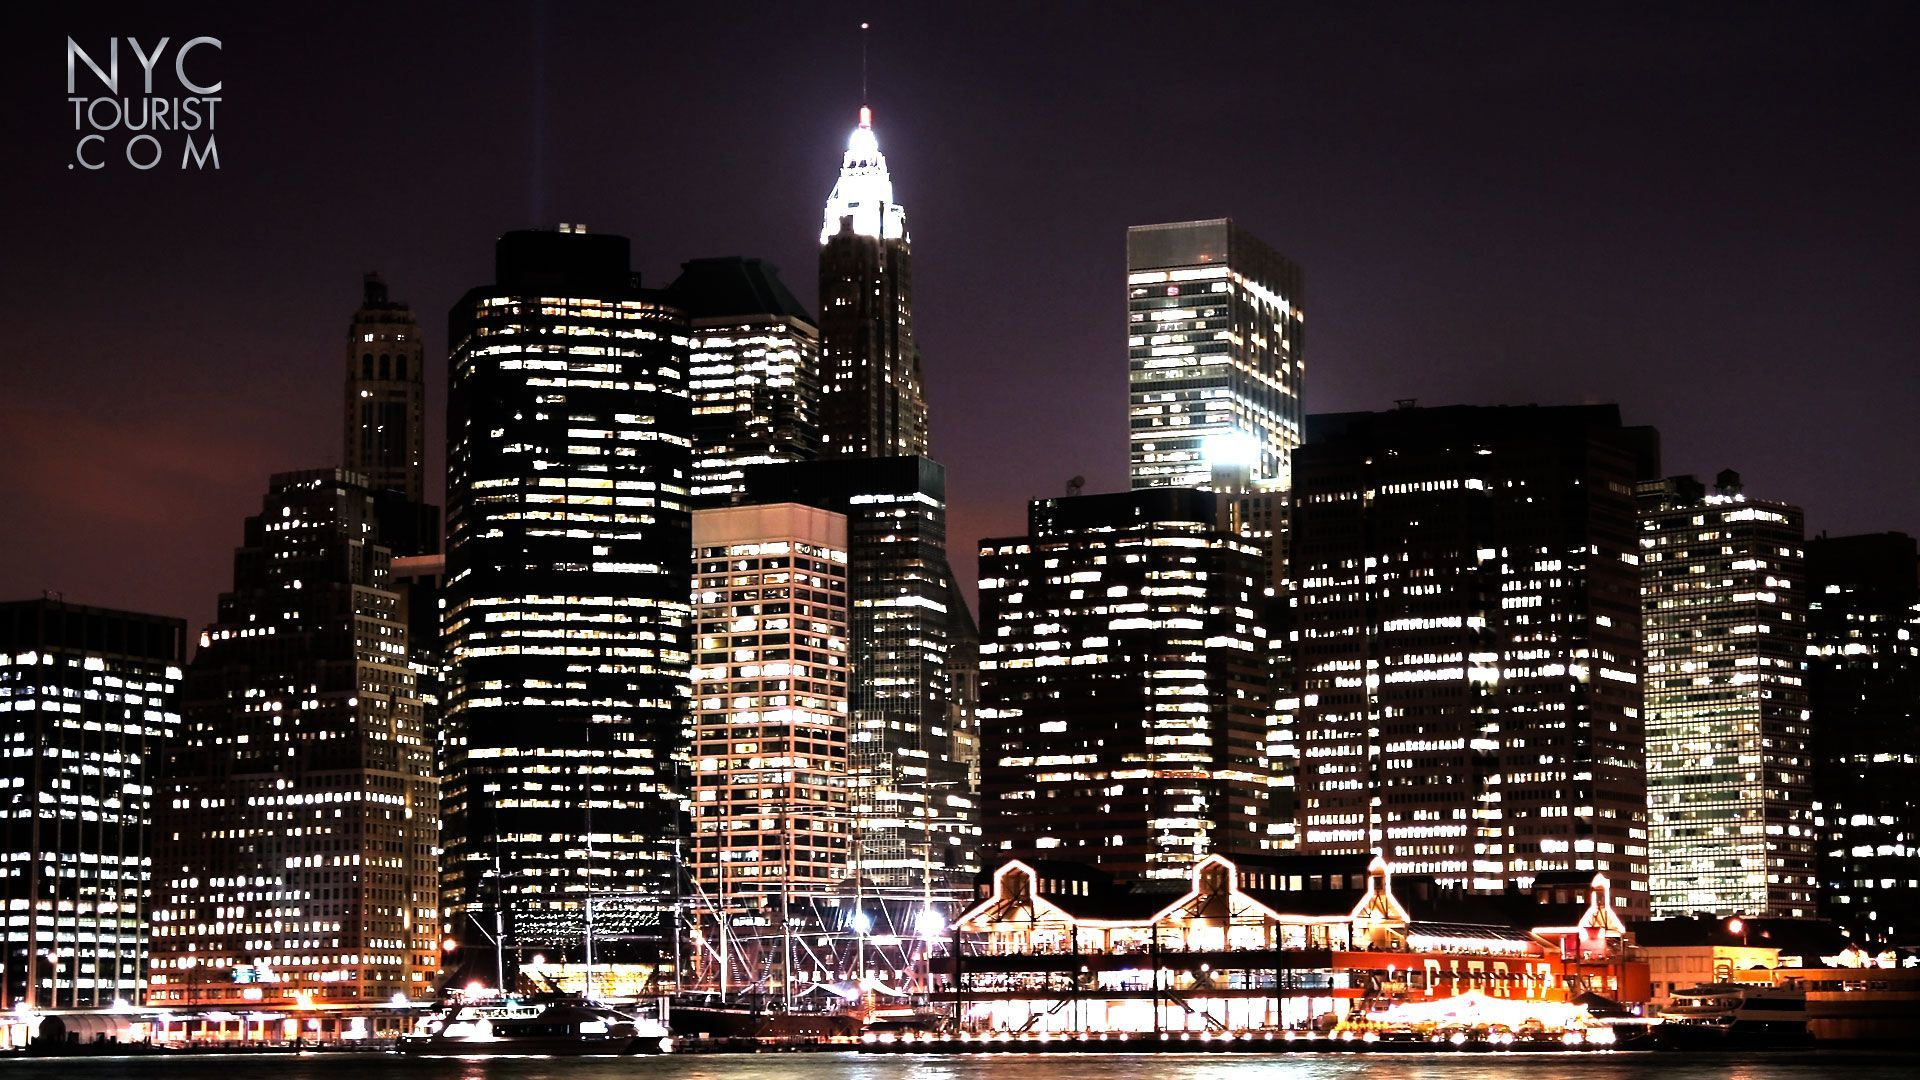 New York City Wallpaper At Night 1920x1080 Wallpaper Teahub Io